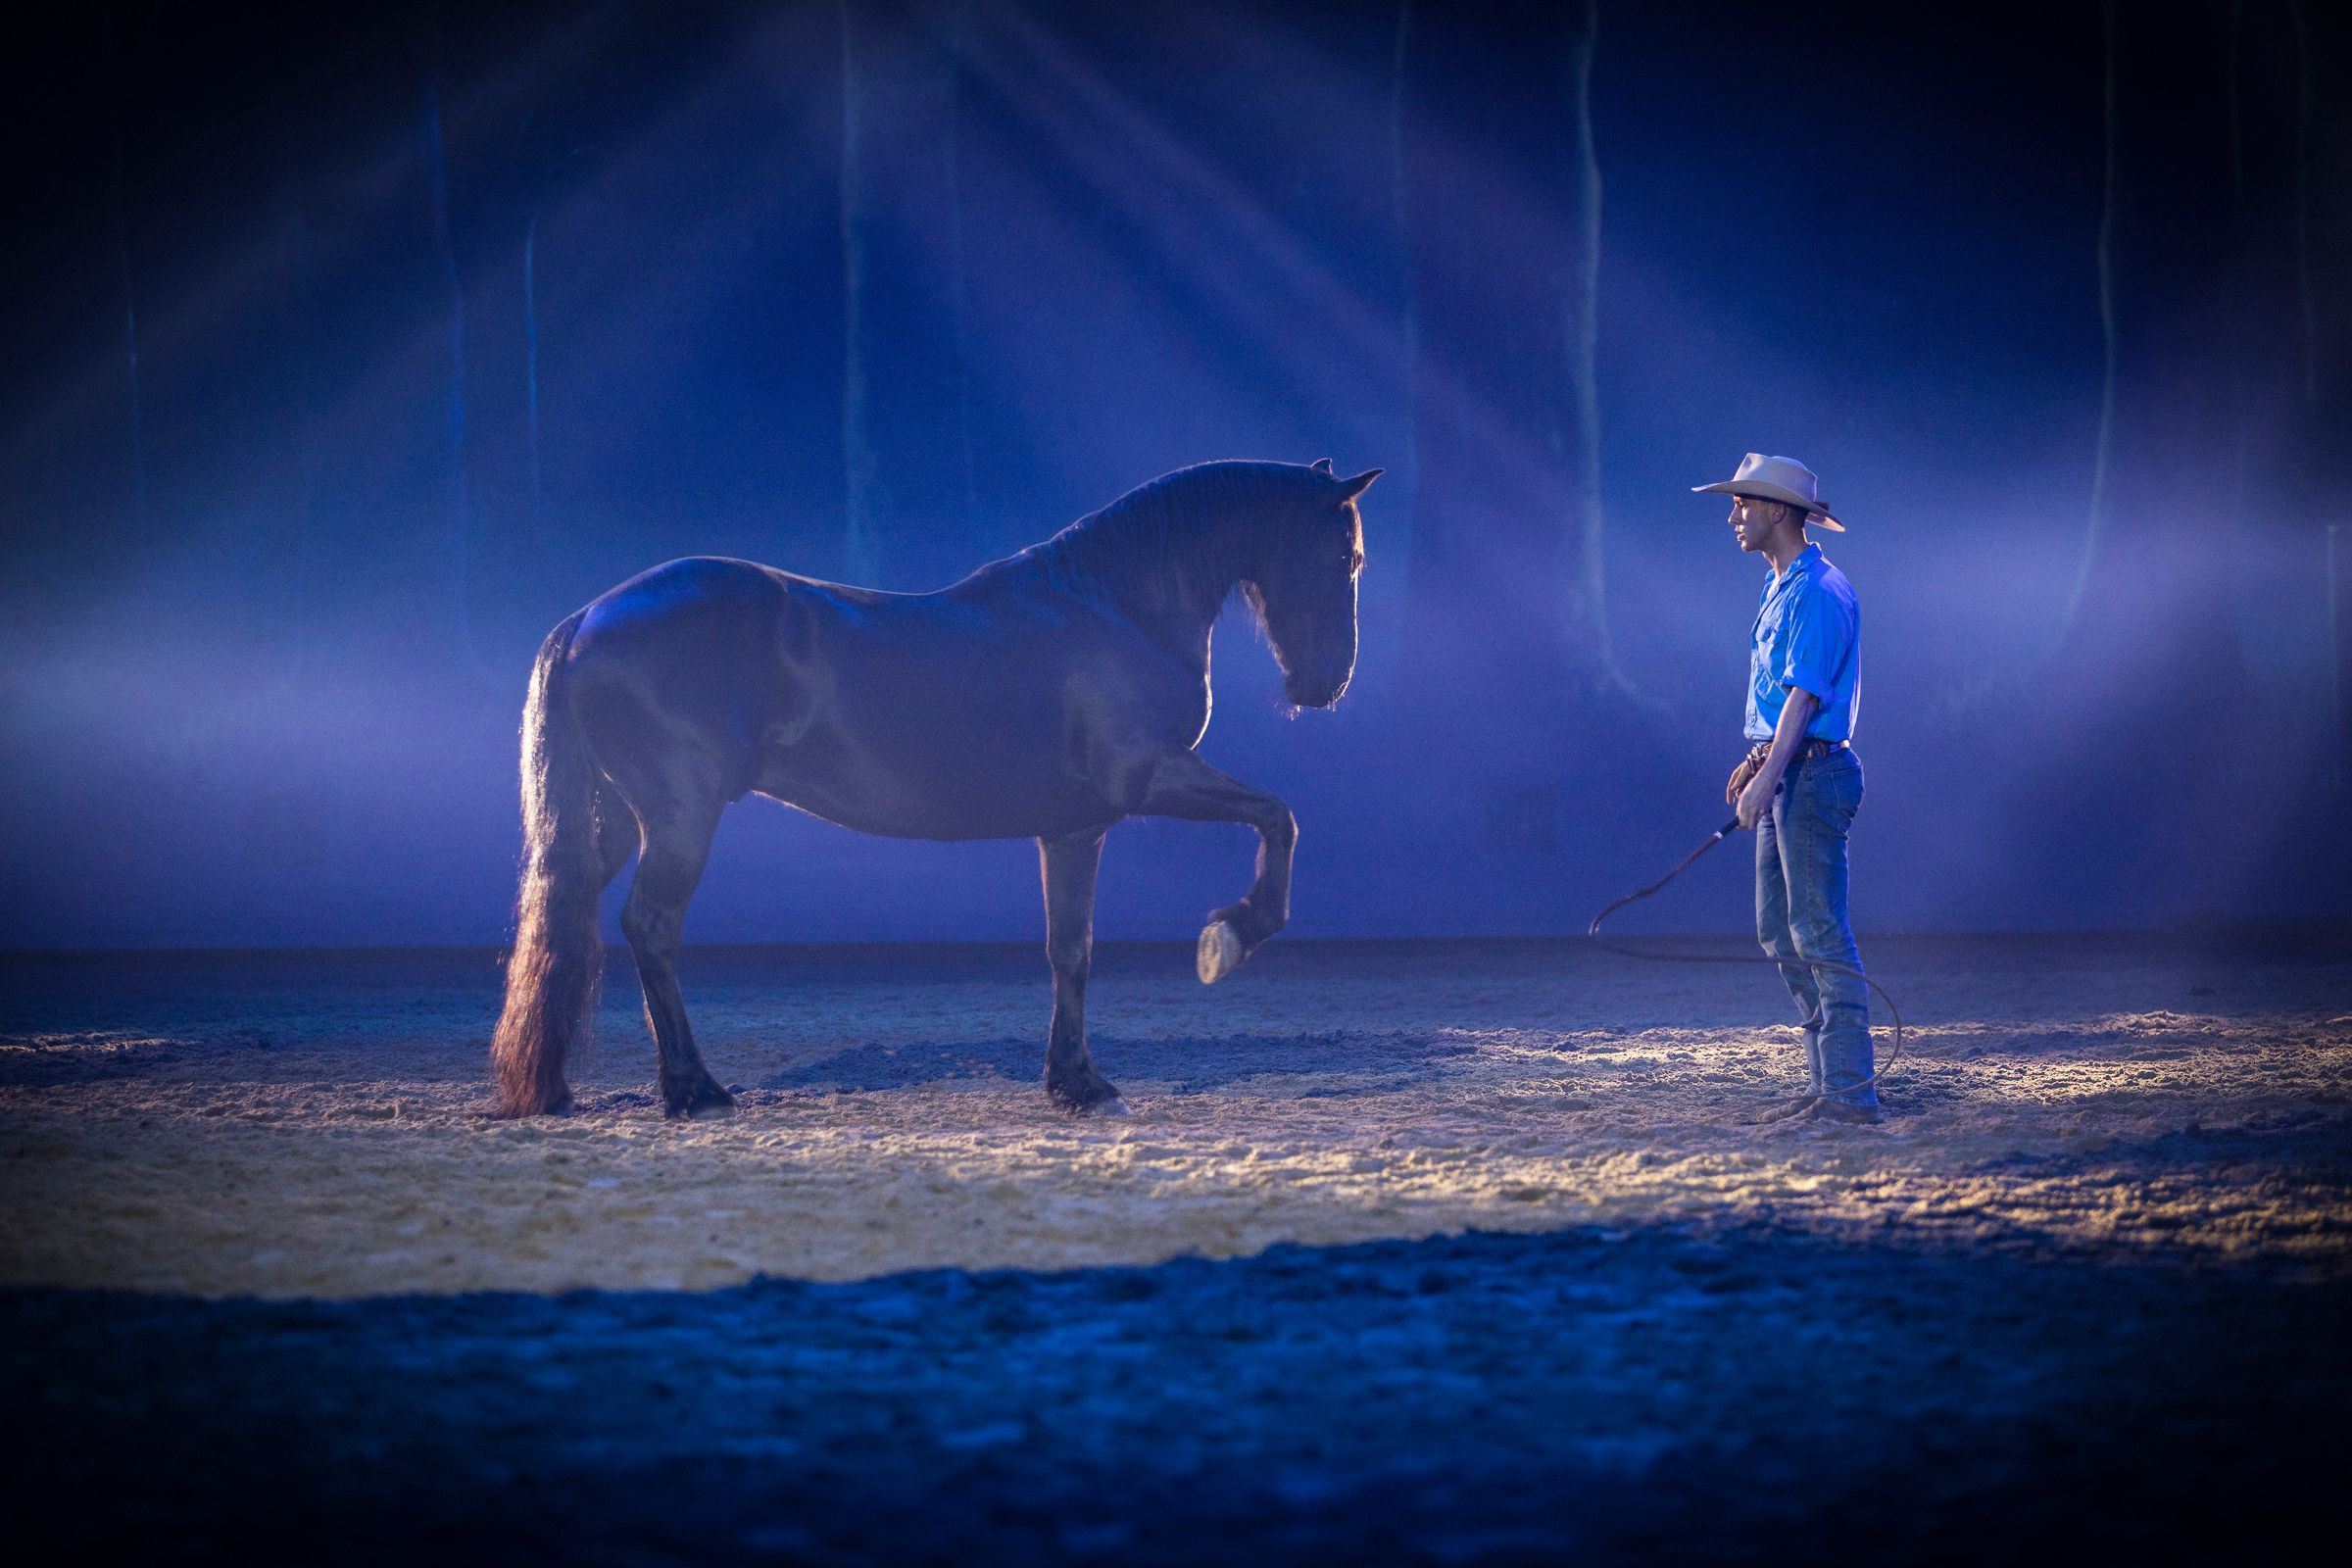 Horse in australian outback spectacular show with man